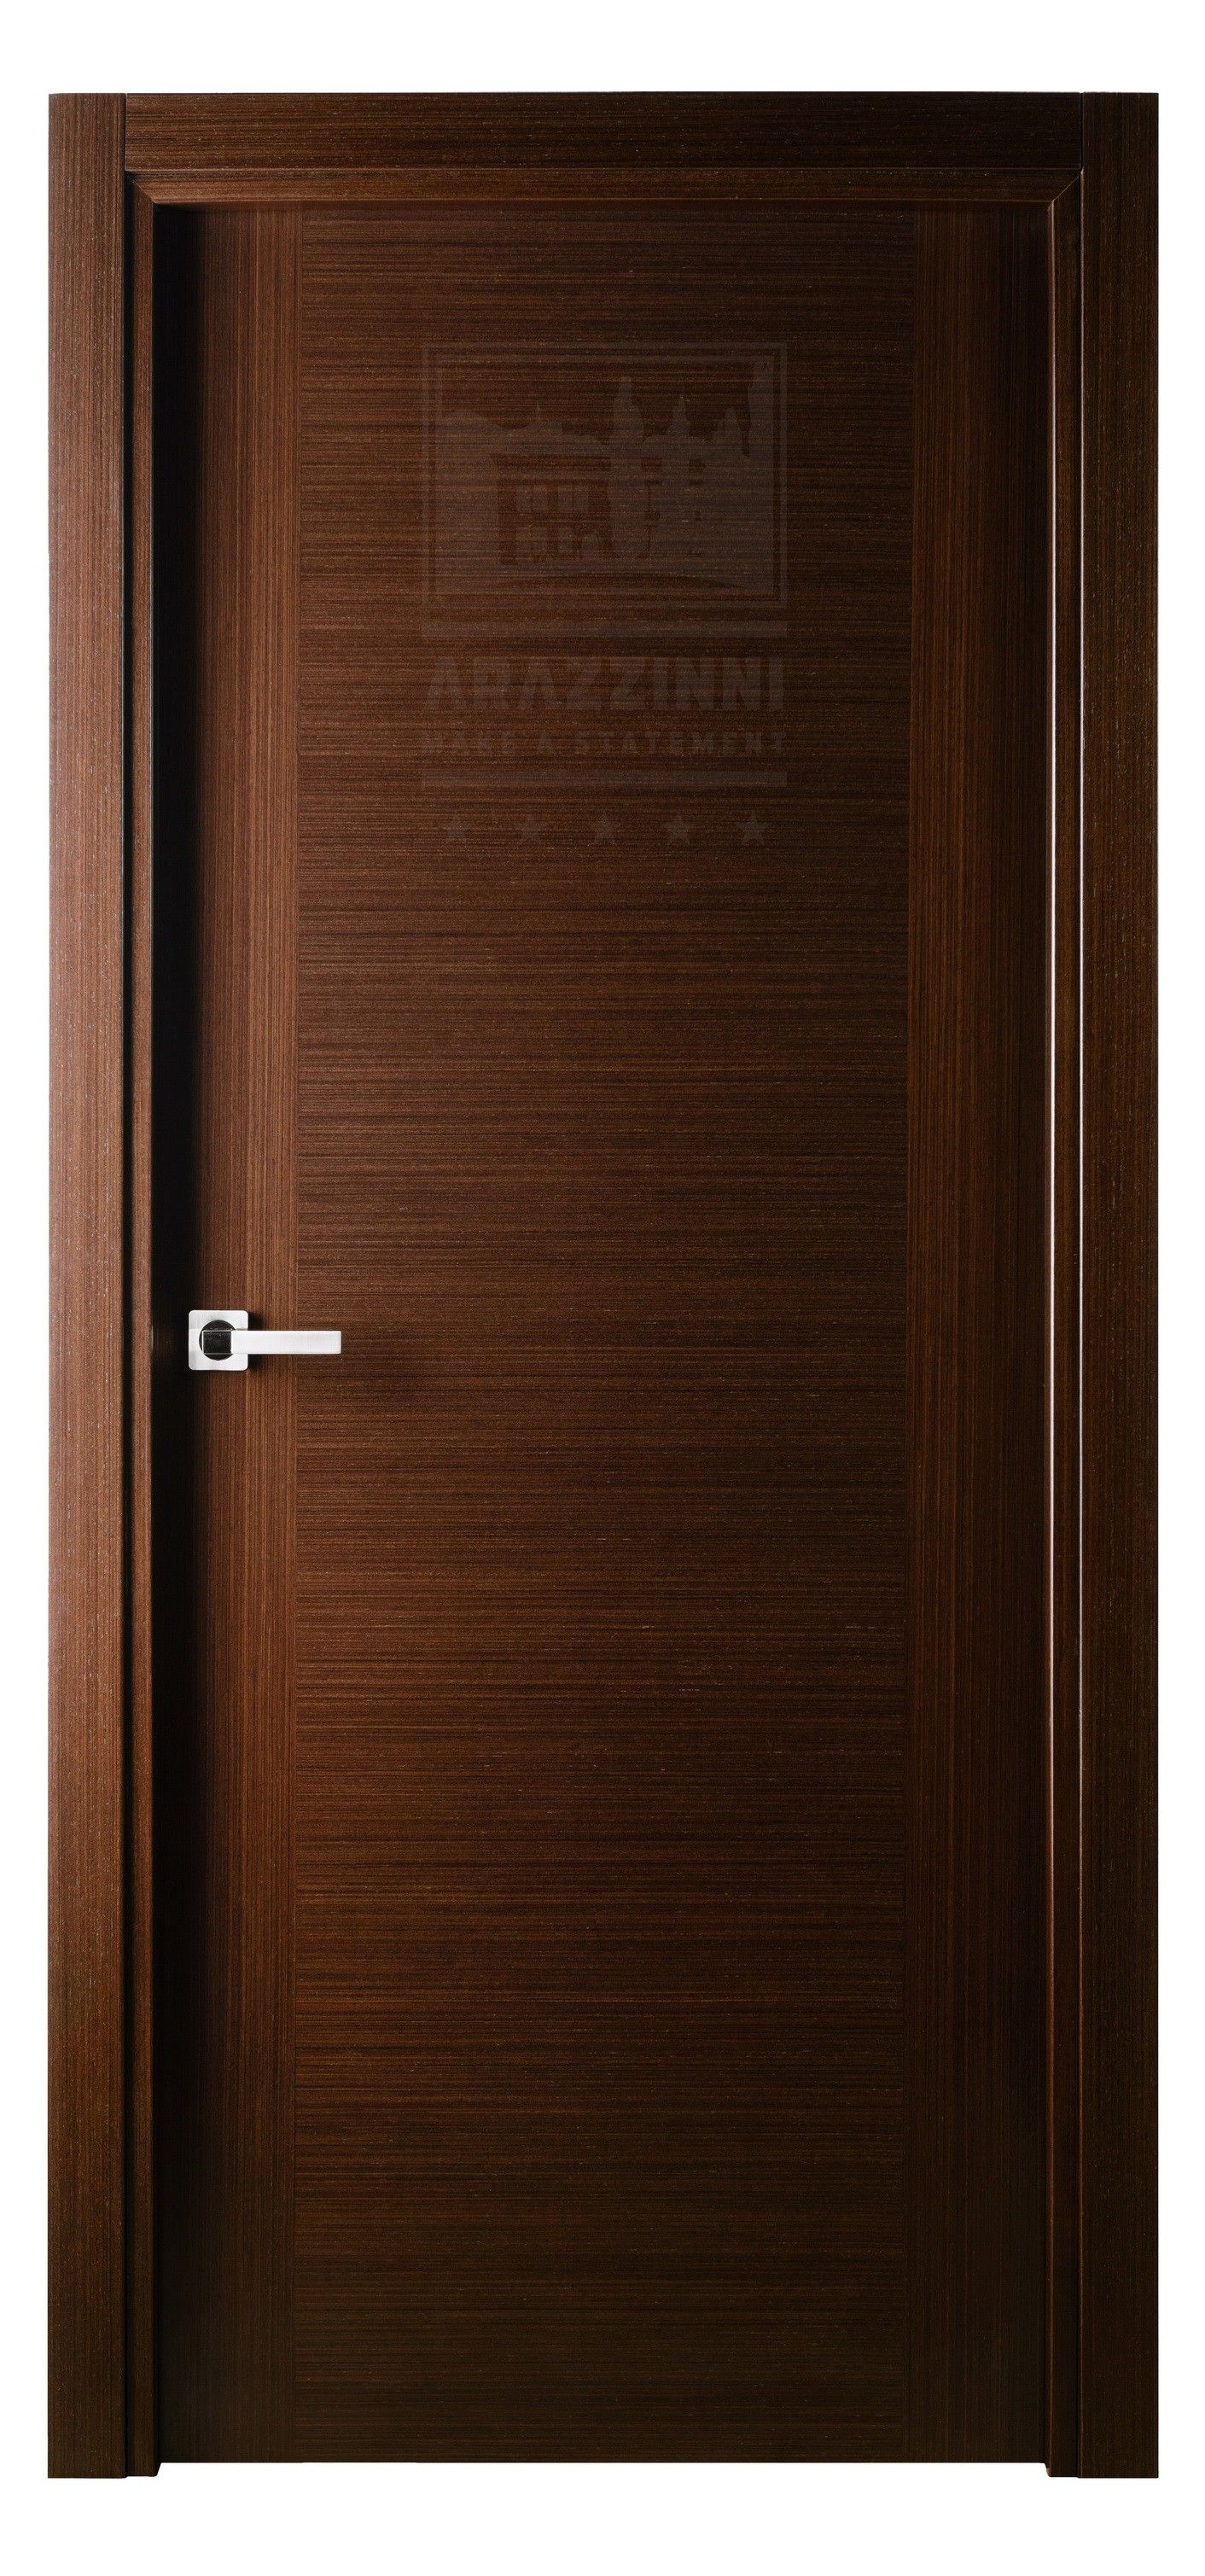 Antha Interior Door Wenge Flush Door Design Doors